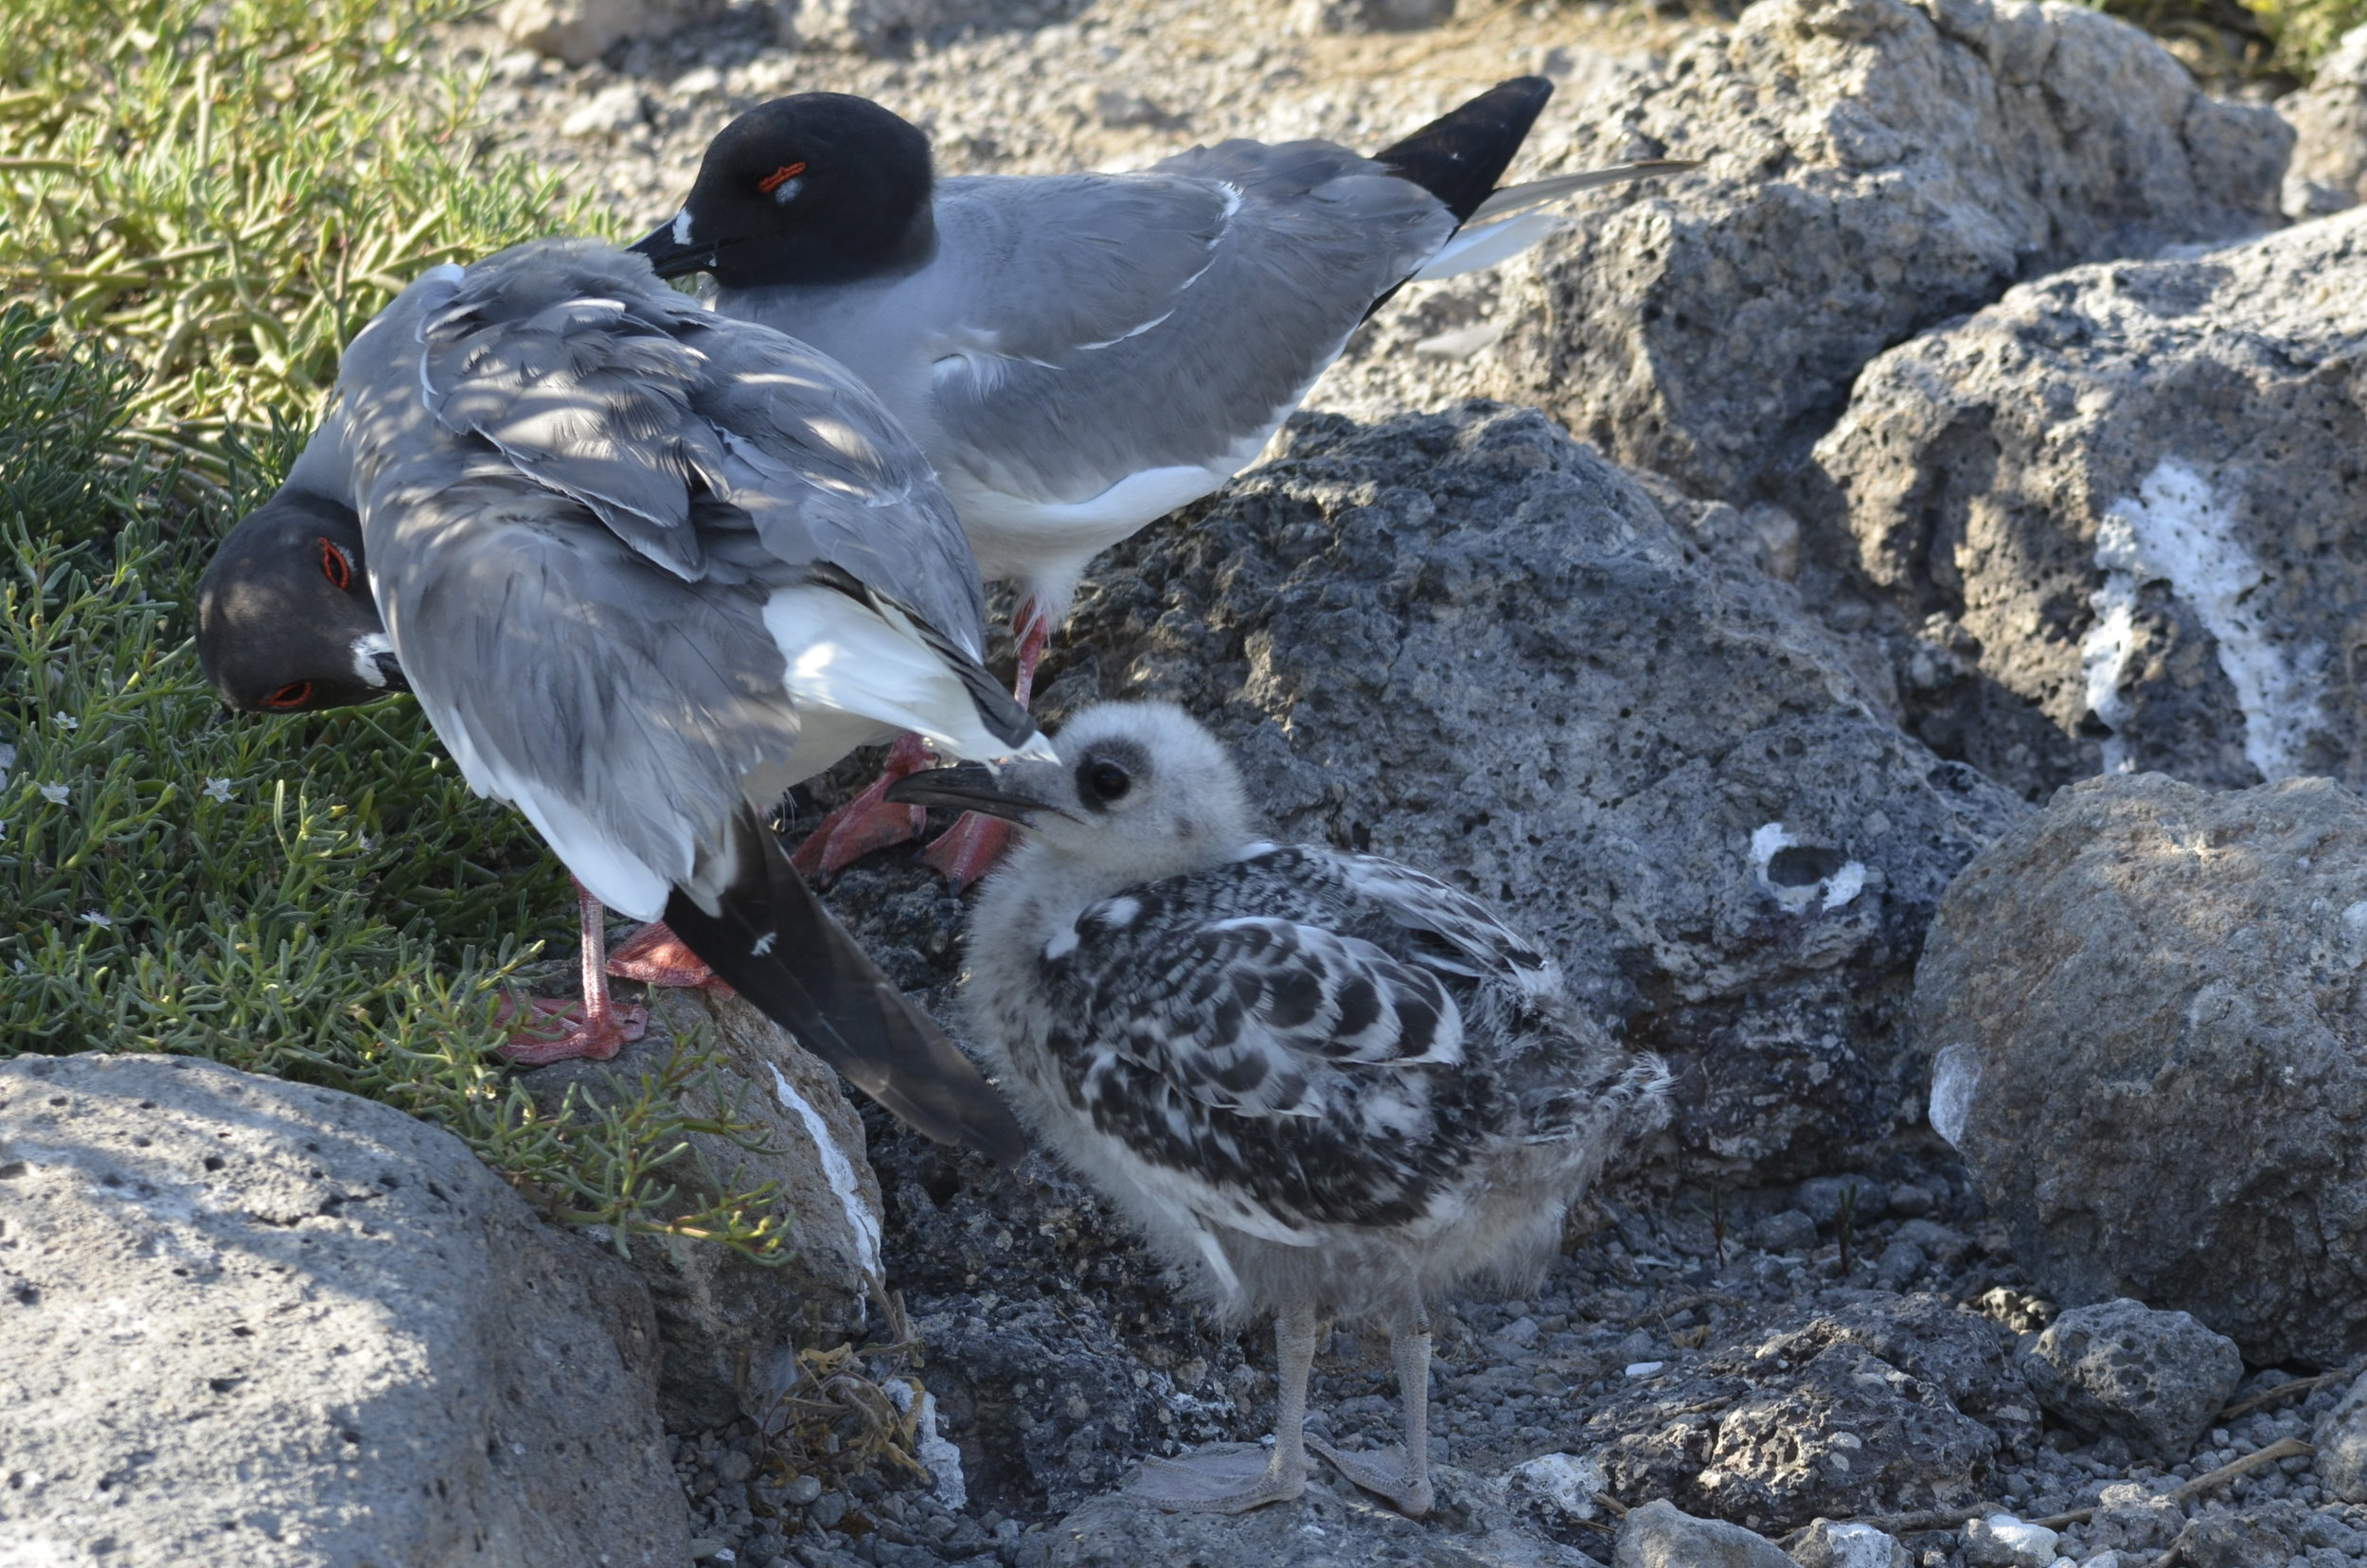 This was the gull family the heron stalked up to.